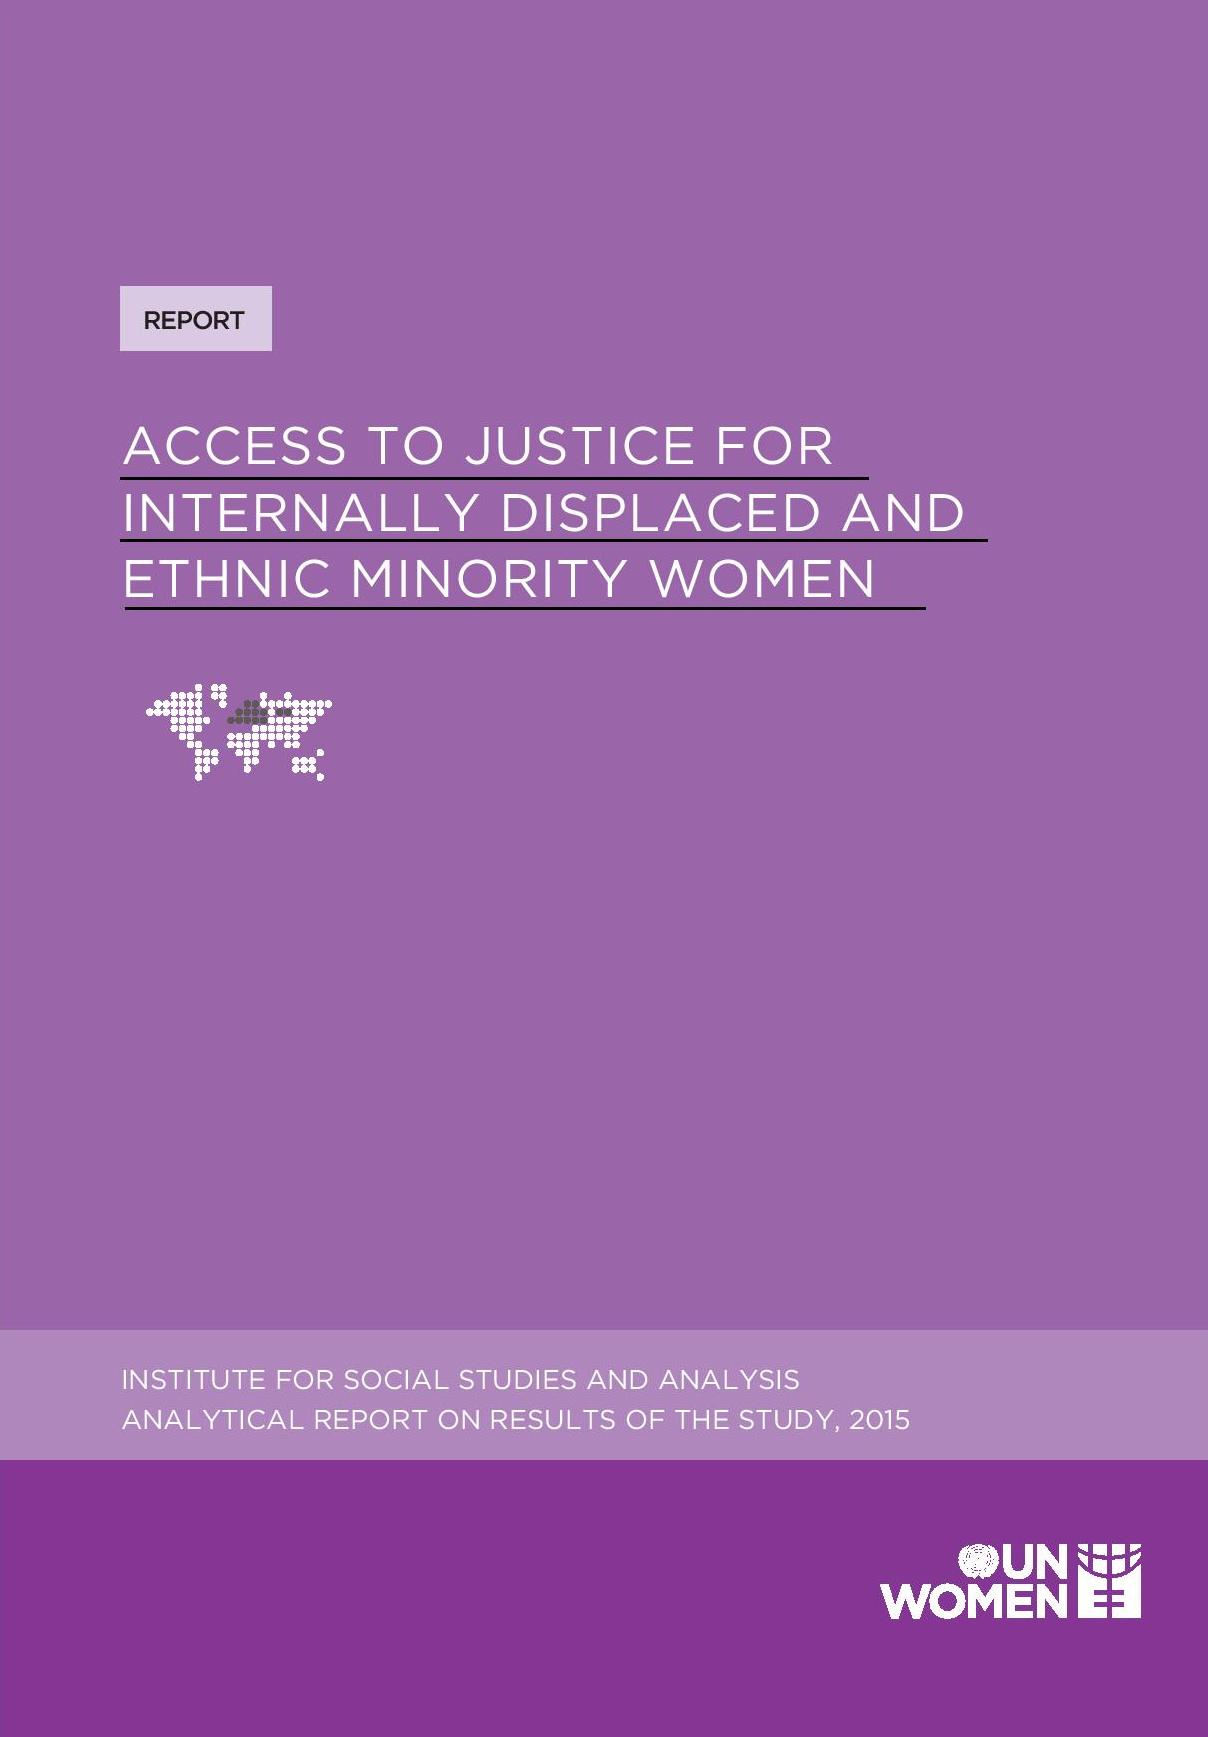 Access to Justice for Internally Displaced and Ethnic Minority Women